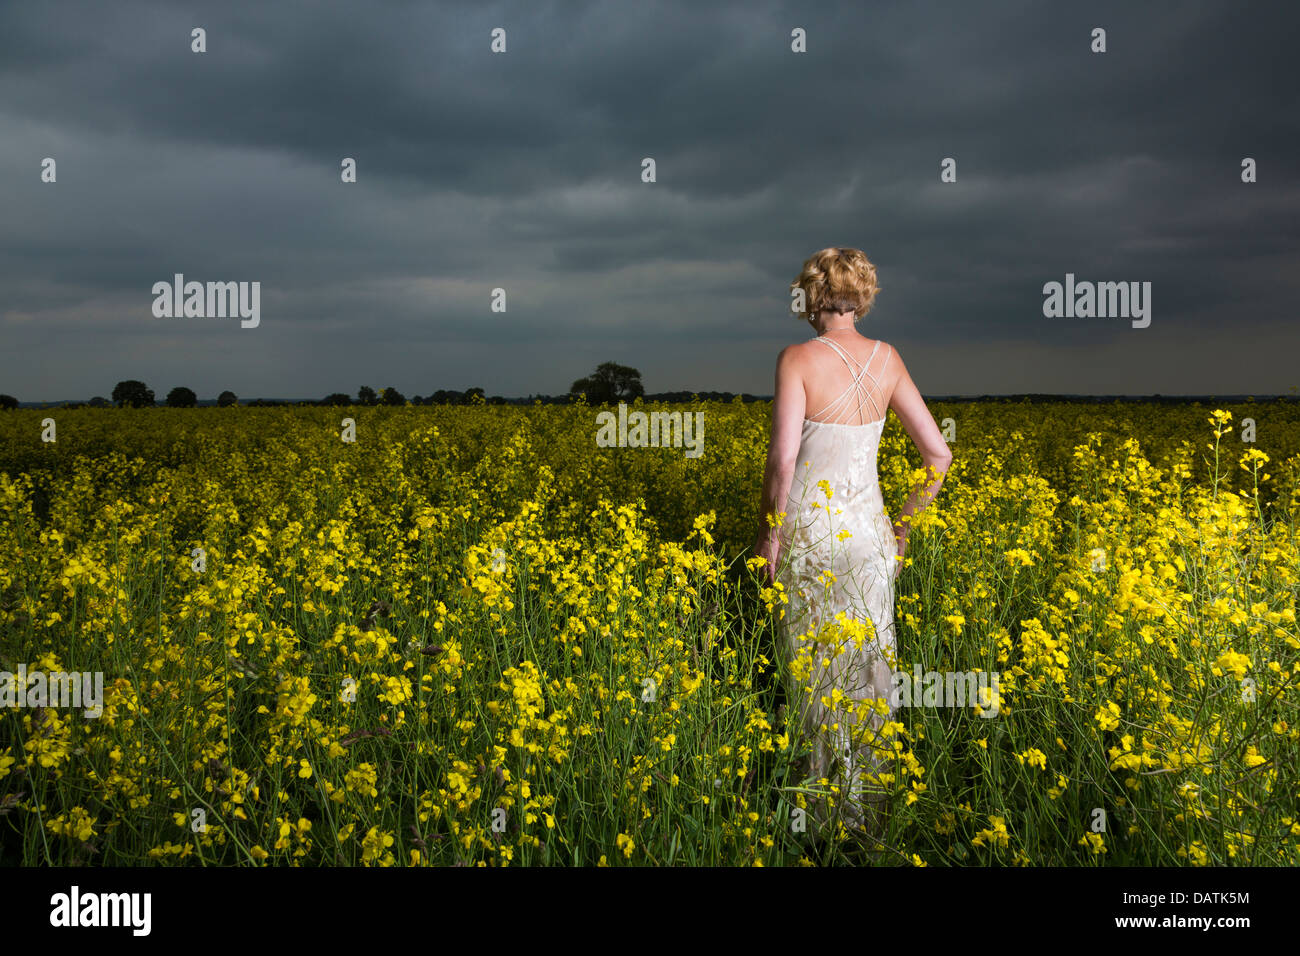 woman standing in field in open countryside - Stock Image